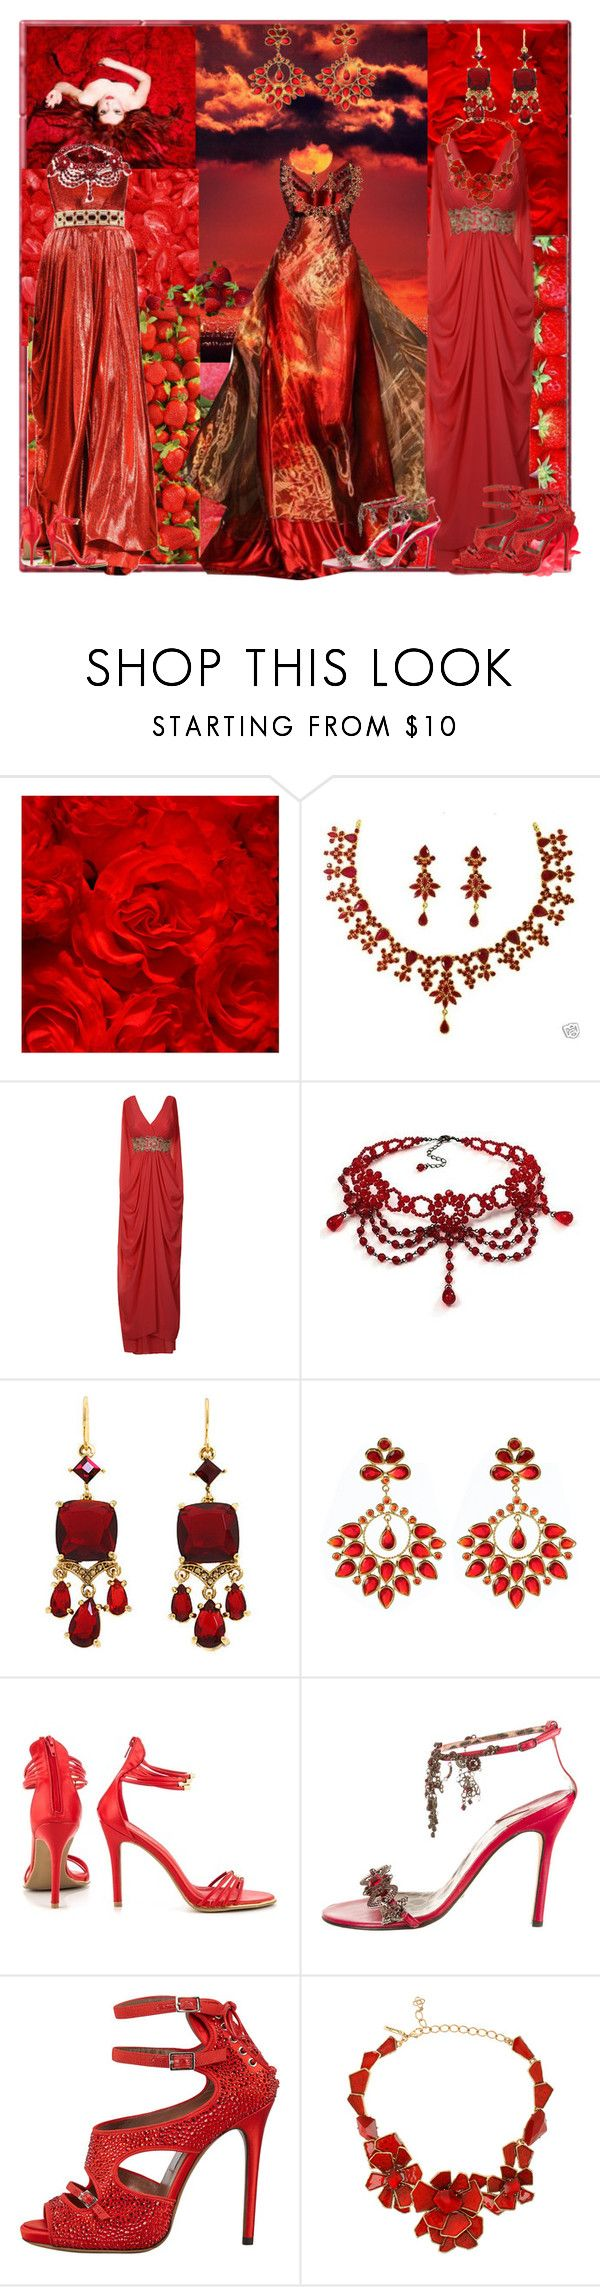 """June Full Strawberry Moon"" by lillian-pandola ❤ liked on Polyvore featuring Elie Saab, Michi, Carolee, Amrita Singh, Shoe Republic LA, Dolce&Gabbana, Tabitha Simmons and Oscar de la Renta"